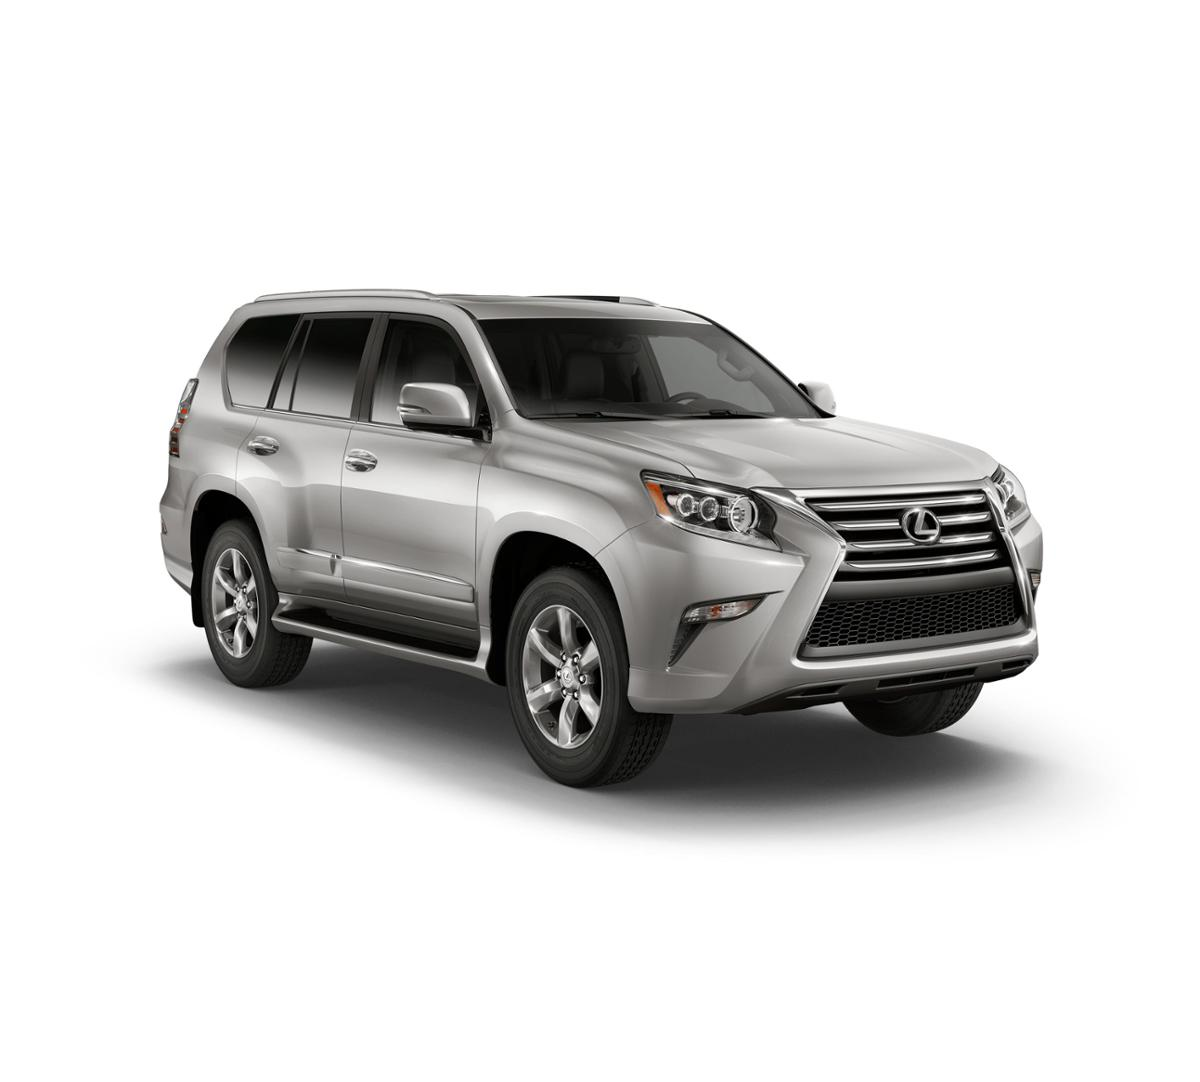 2017 Lexus GX 460 Vehicle Photo in Dallas, TX 75209